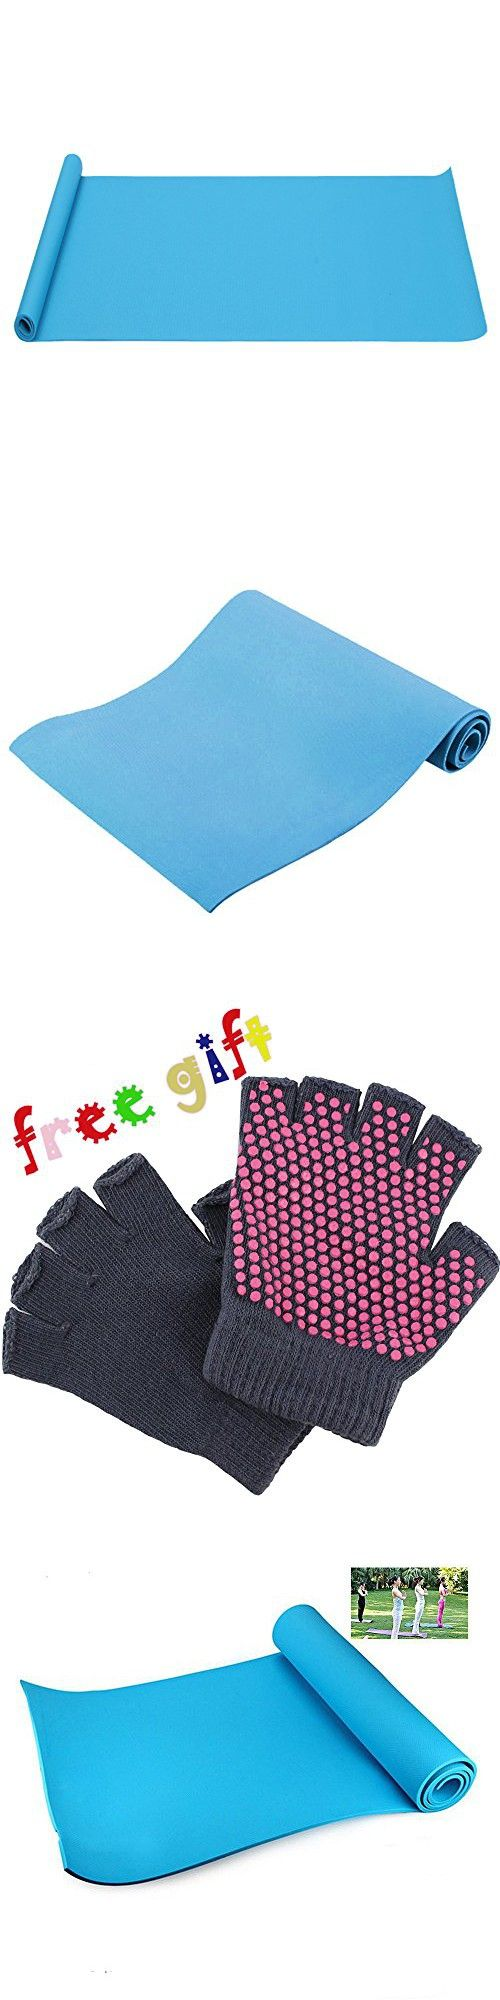 Ezyoutdoor 6mm Thick Picnic Mats Pad Yoga Mat Exercise Fitness,Yogitoes Yoga Mats Workout Pilates Gym Hot Yoga Floor Mat 180 x 50cm blue with life warranty with Gift Yoga Glove